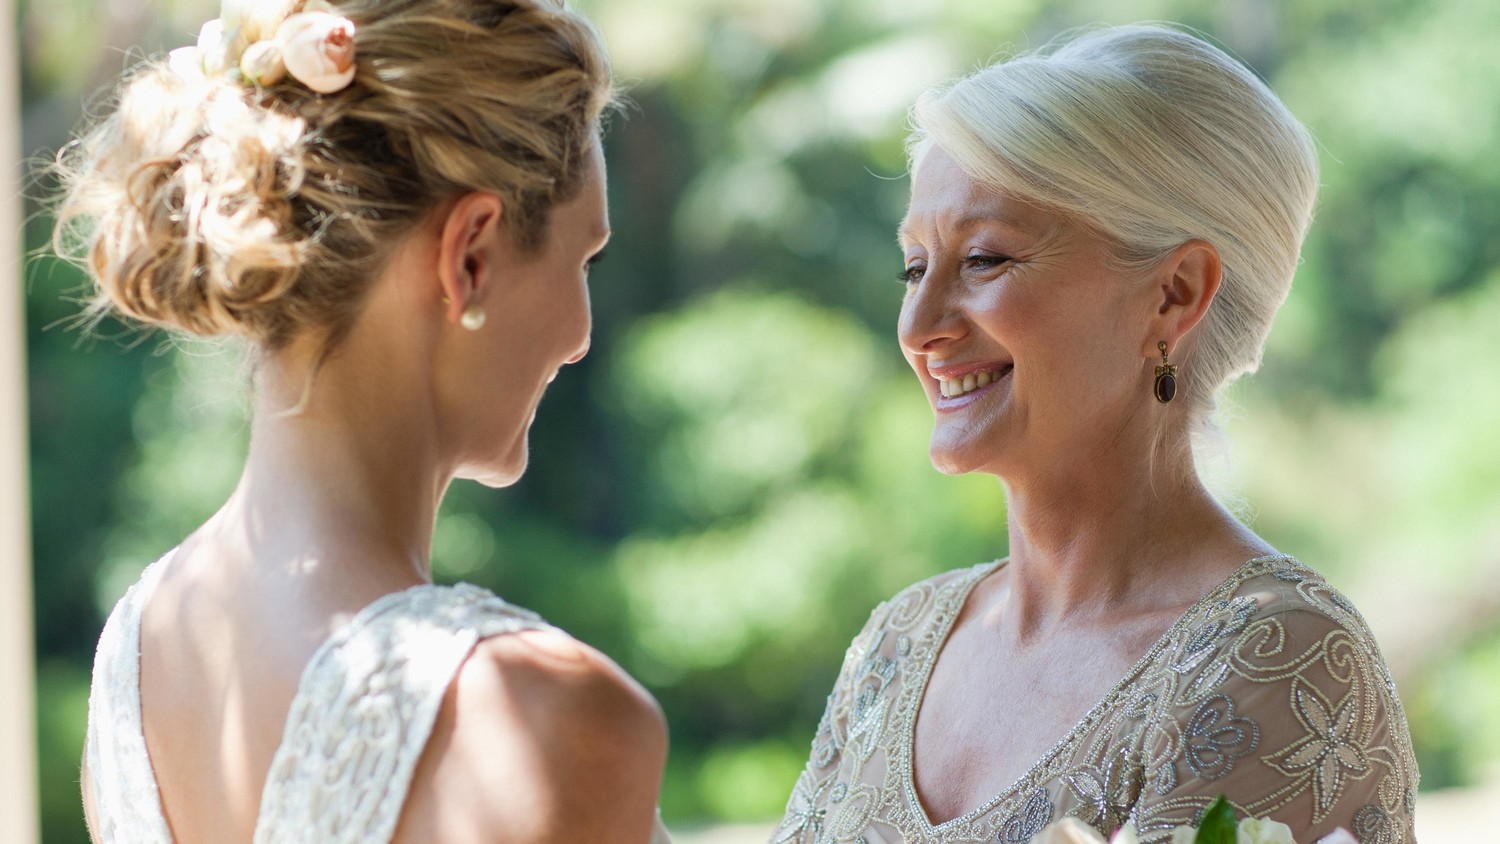 A Bride and her Mother gazing lovingly at each other